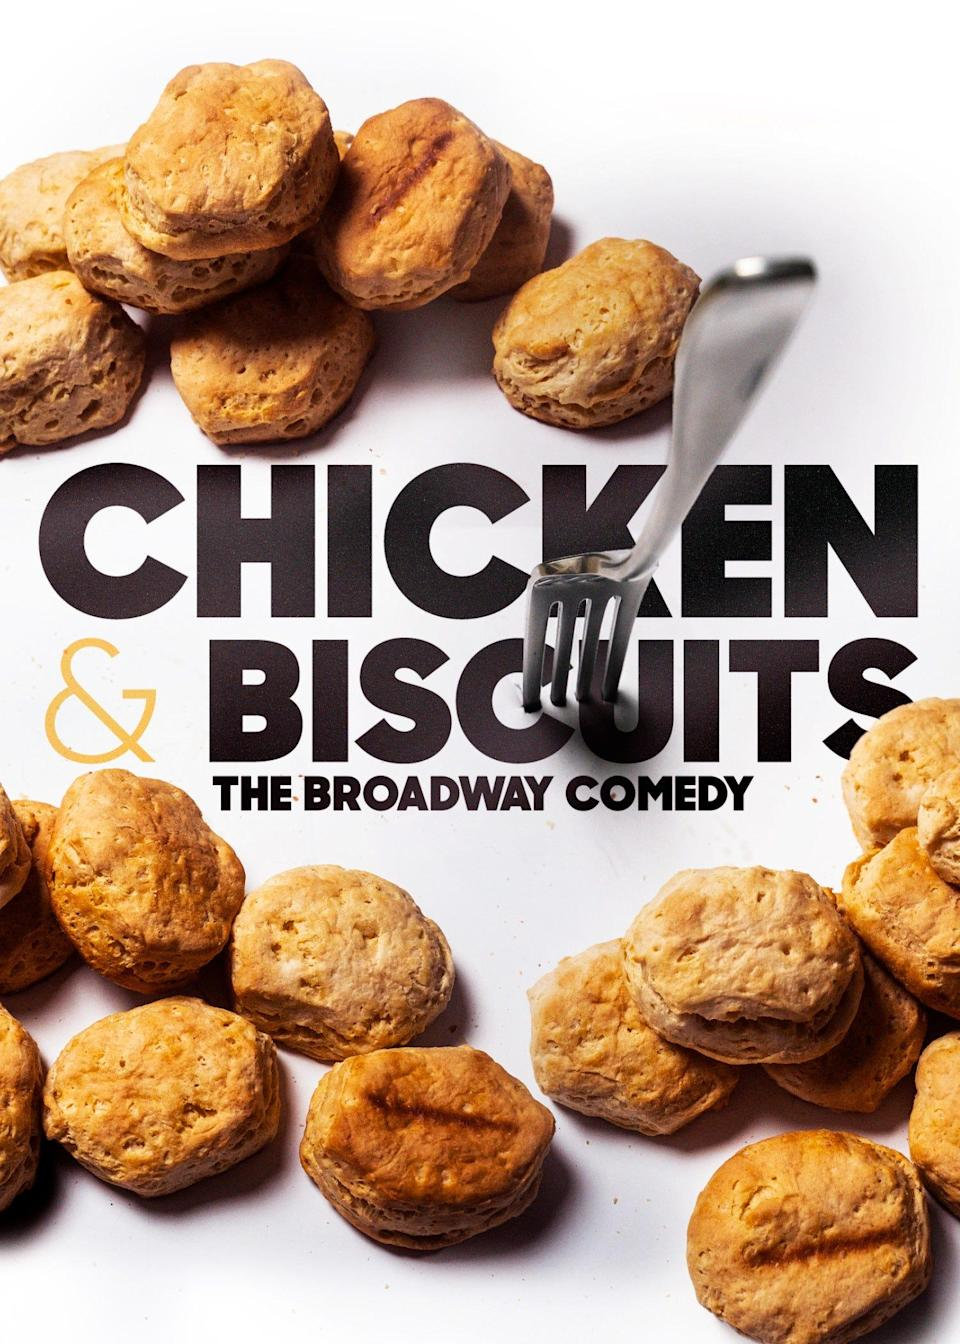 """""""Chicken & Biscuits"""" is directed by Zhailon Levingston, who at 27, is the youngest Black director in Broadway history."""